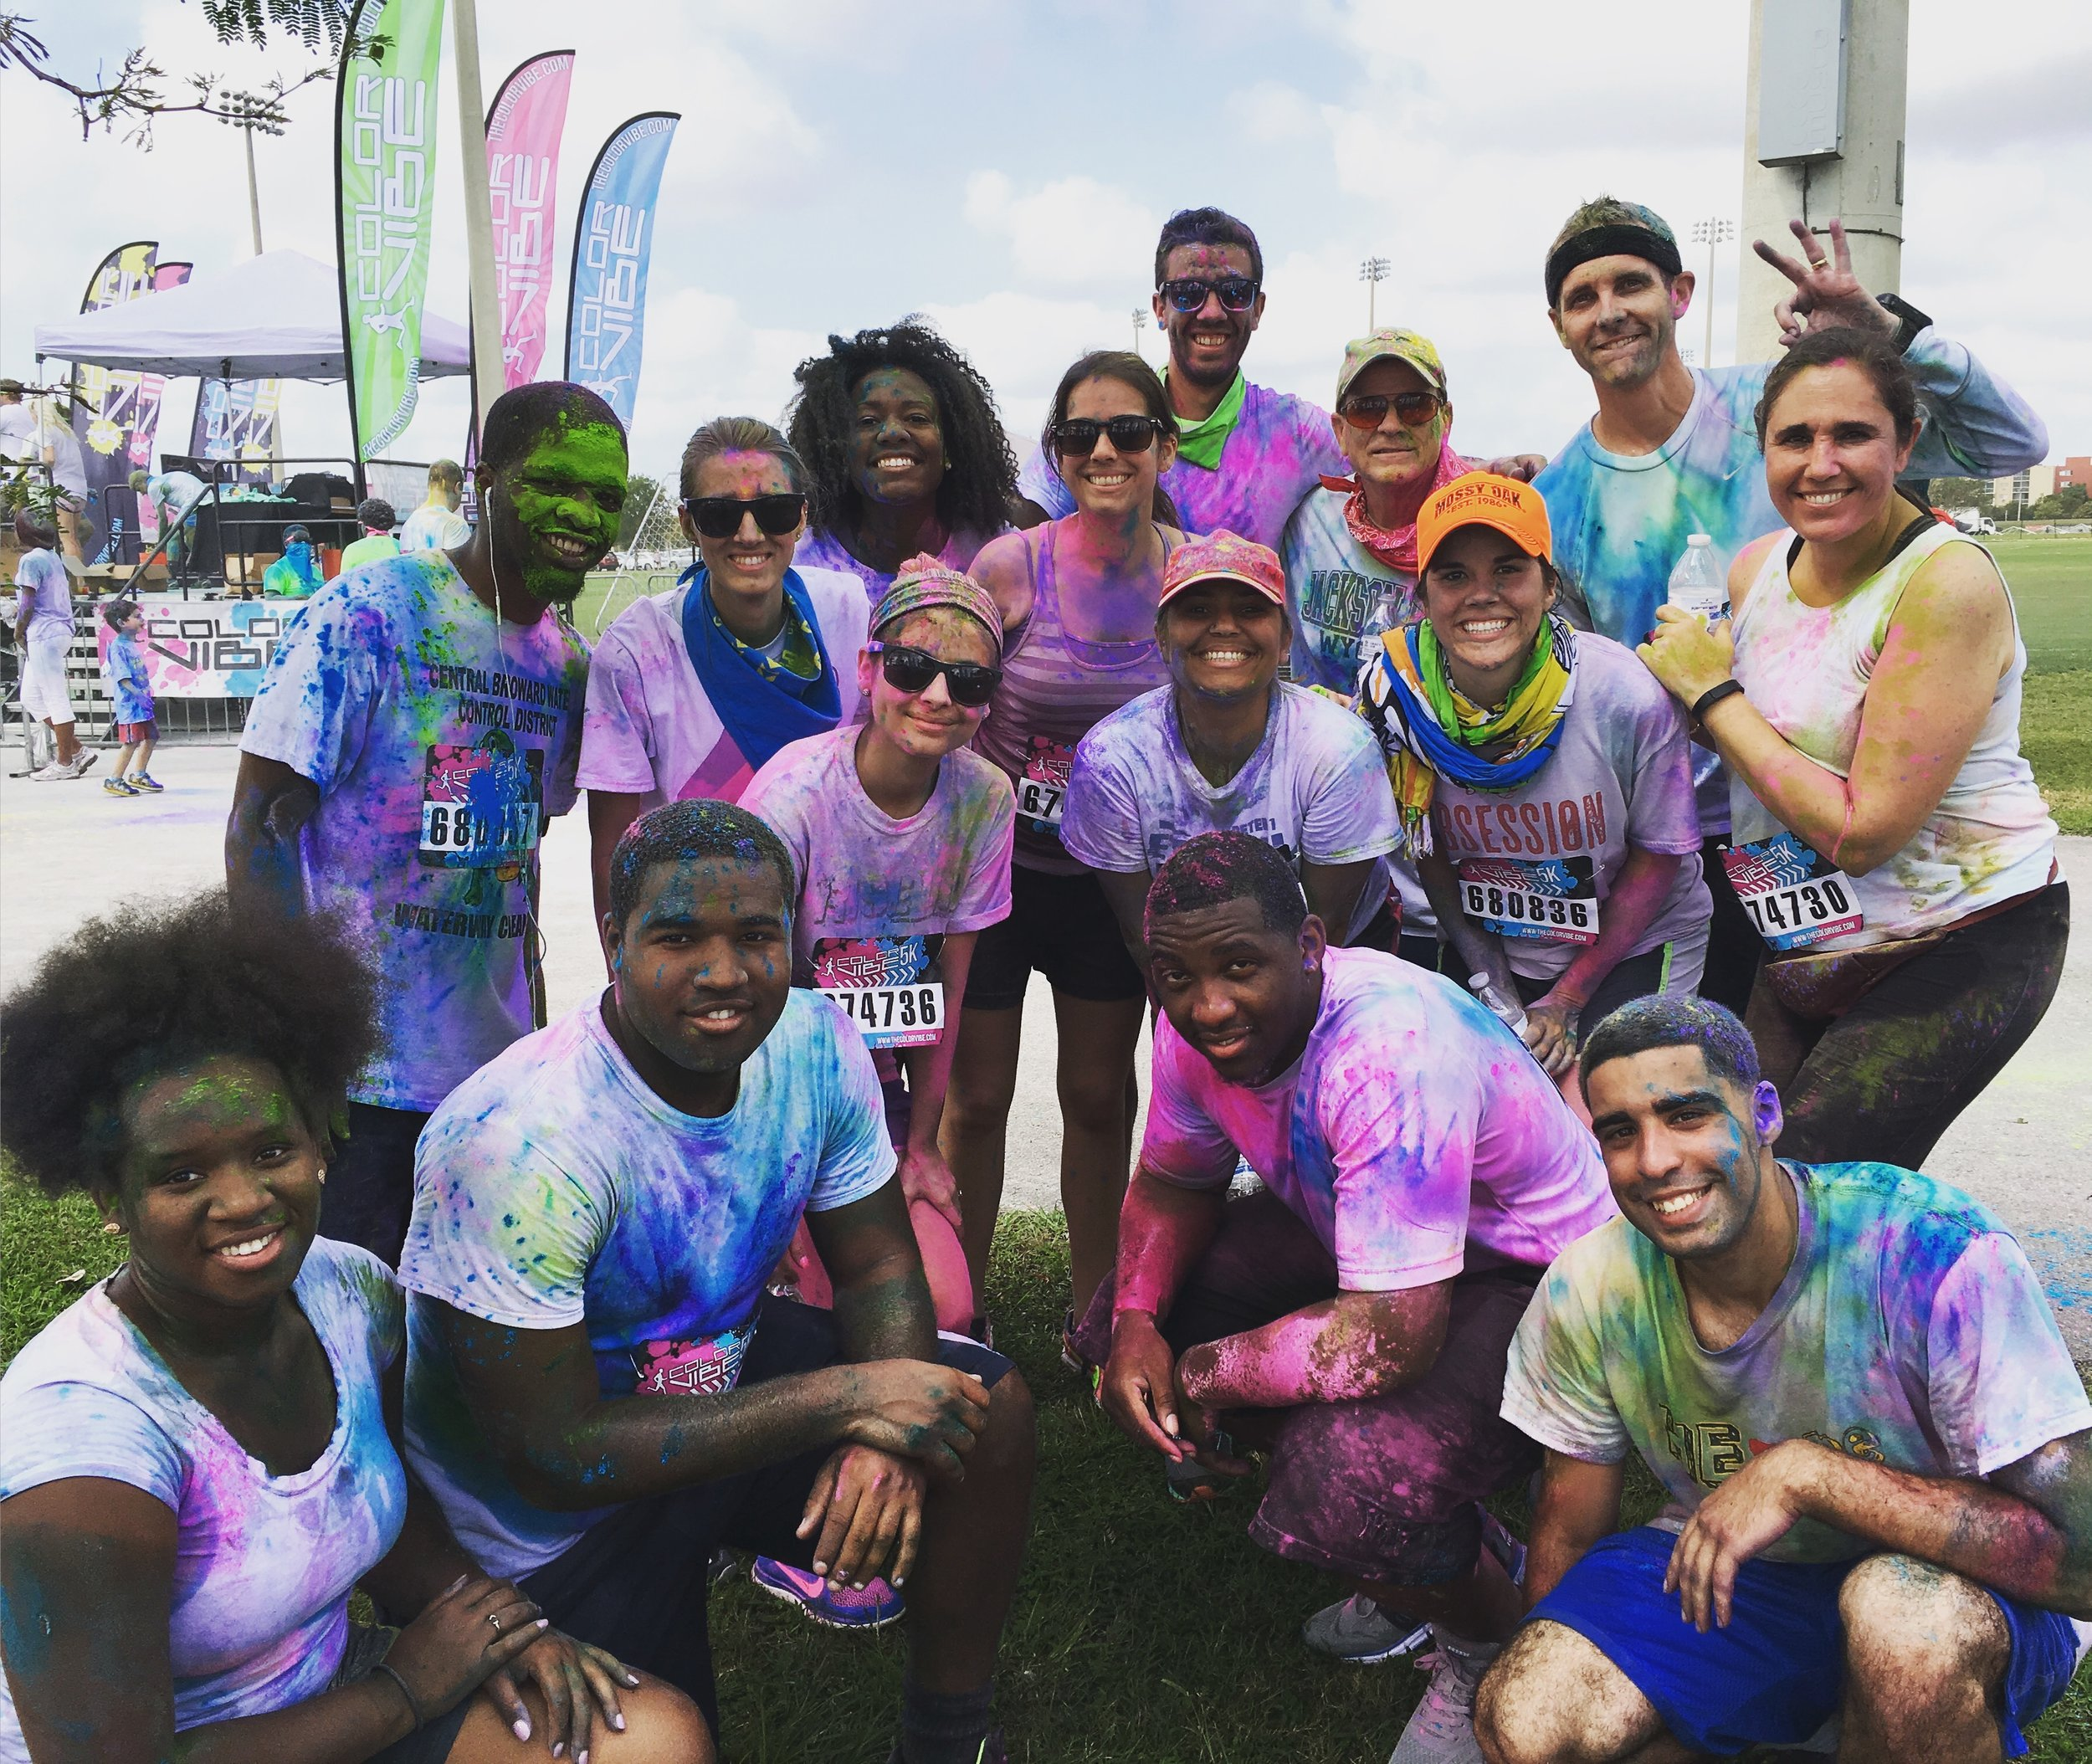 One of our best days: The Millennials organized a 5K Color Vibe Run to raise money for charity. That's me pictured top right with a Gen X'er to the right and a Baby Boomer to the left. We're surrounded by a dozen passionate, fun-loving Millennials that brought us together that day.